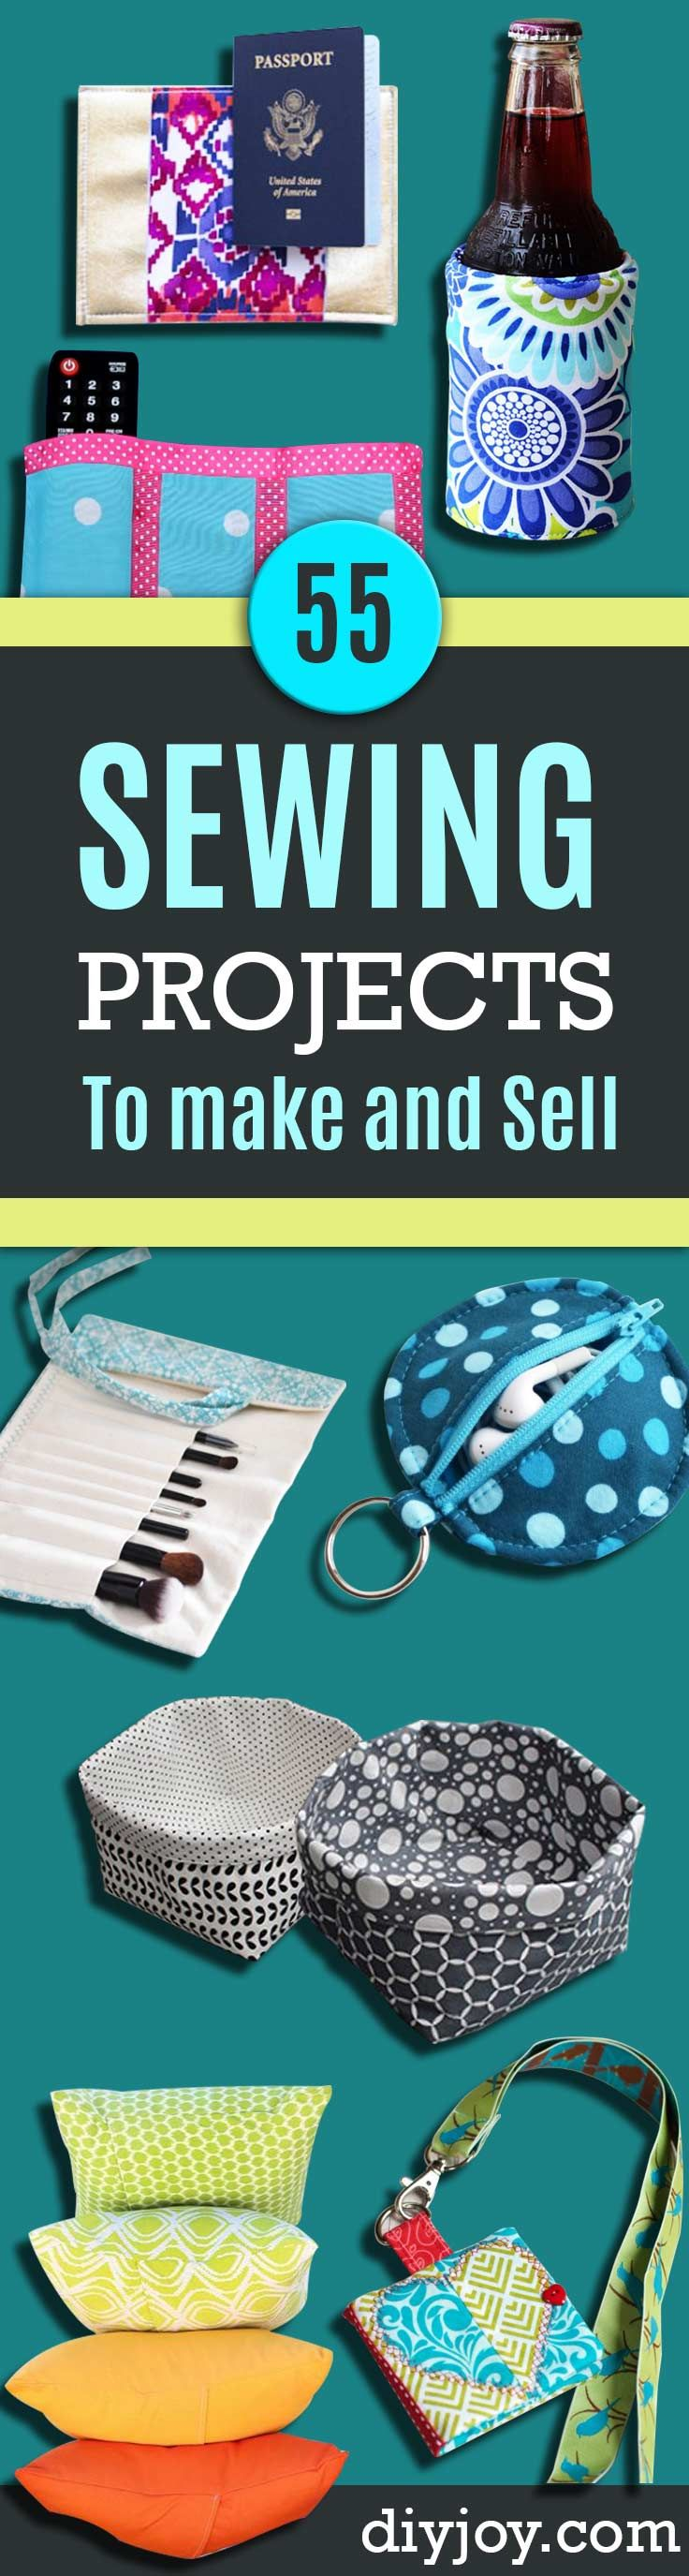 55 sewing projects to make and sell craft business